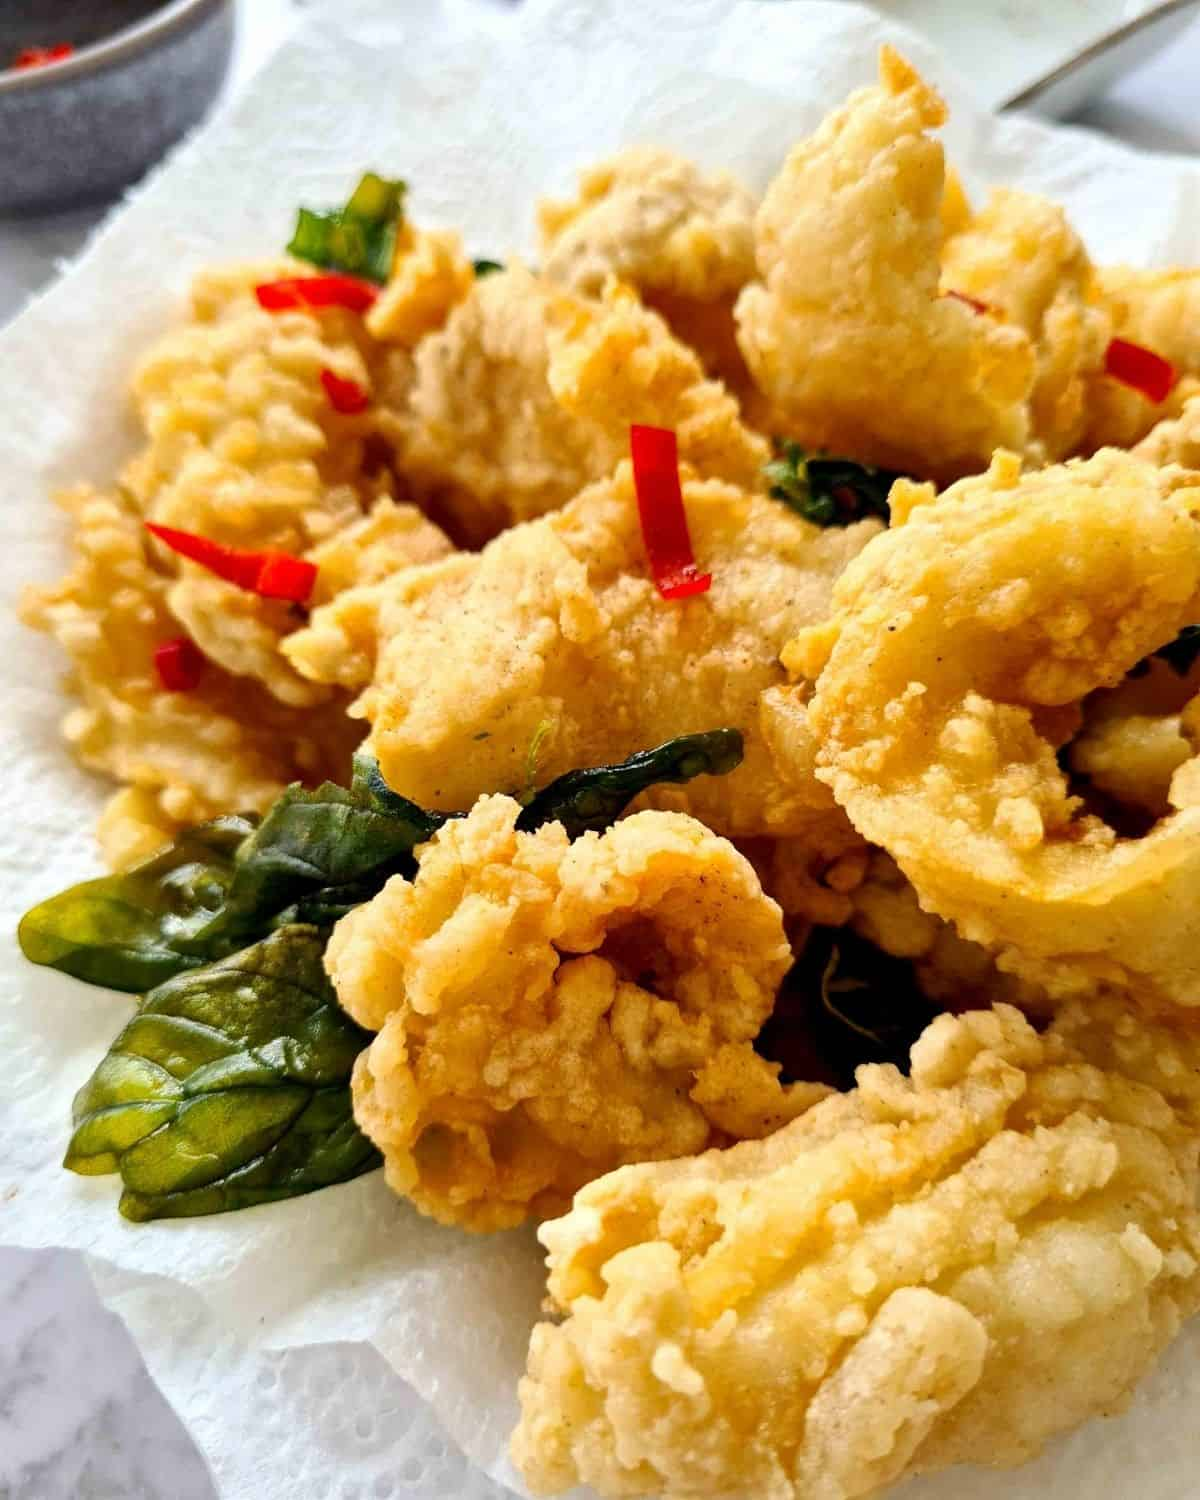 Close up, side view of crispy coated squid decorated with bail crisps and chilli